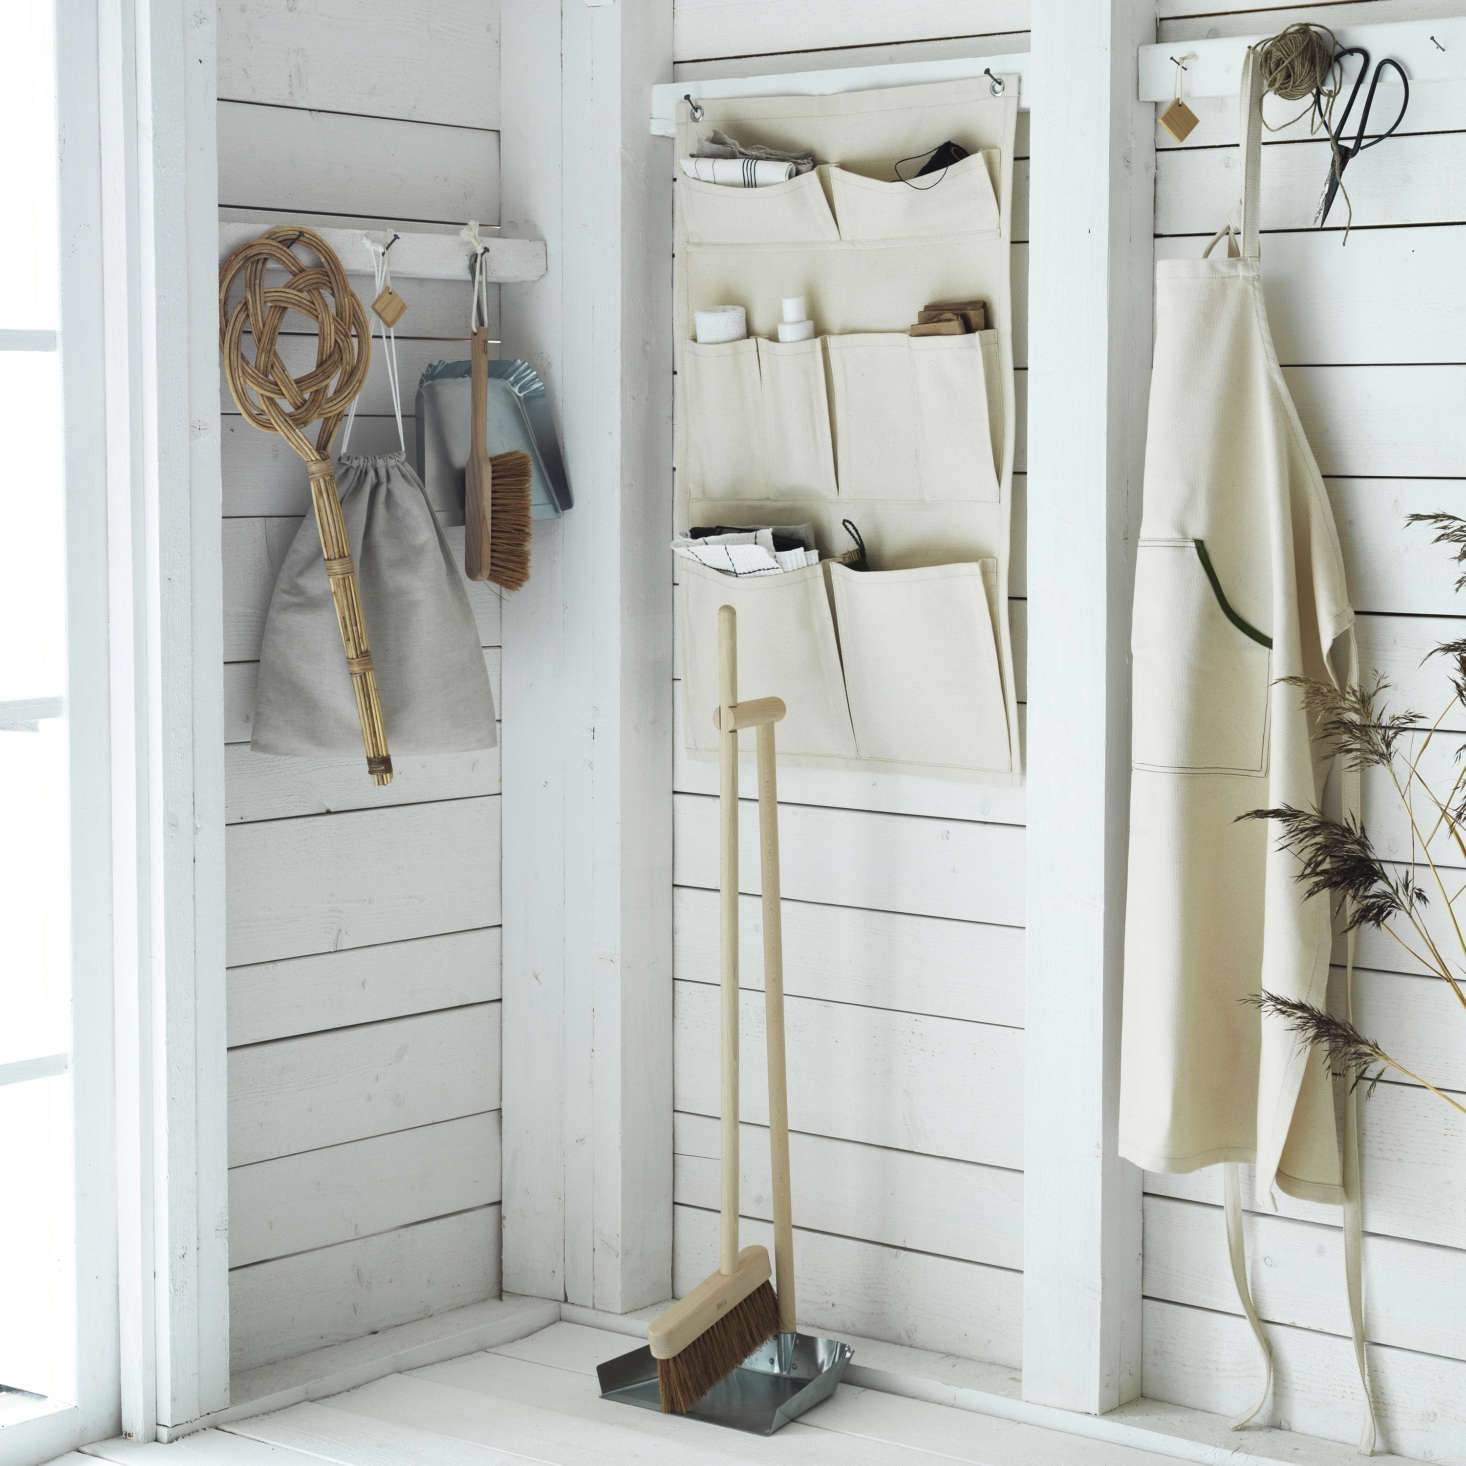 The products in the Borstad line are all made from natural materials such as hardwood, cedar, metal, rattan and canvas. From left: a rattan Carpet Beater ($5.99), a linen Shoe Bag ($4.99), a Dust Pan and Brush ($src=